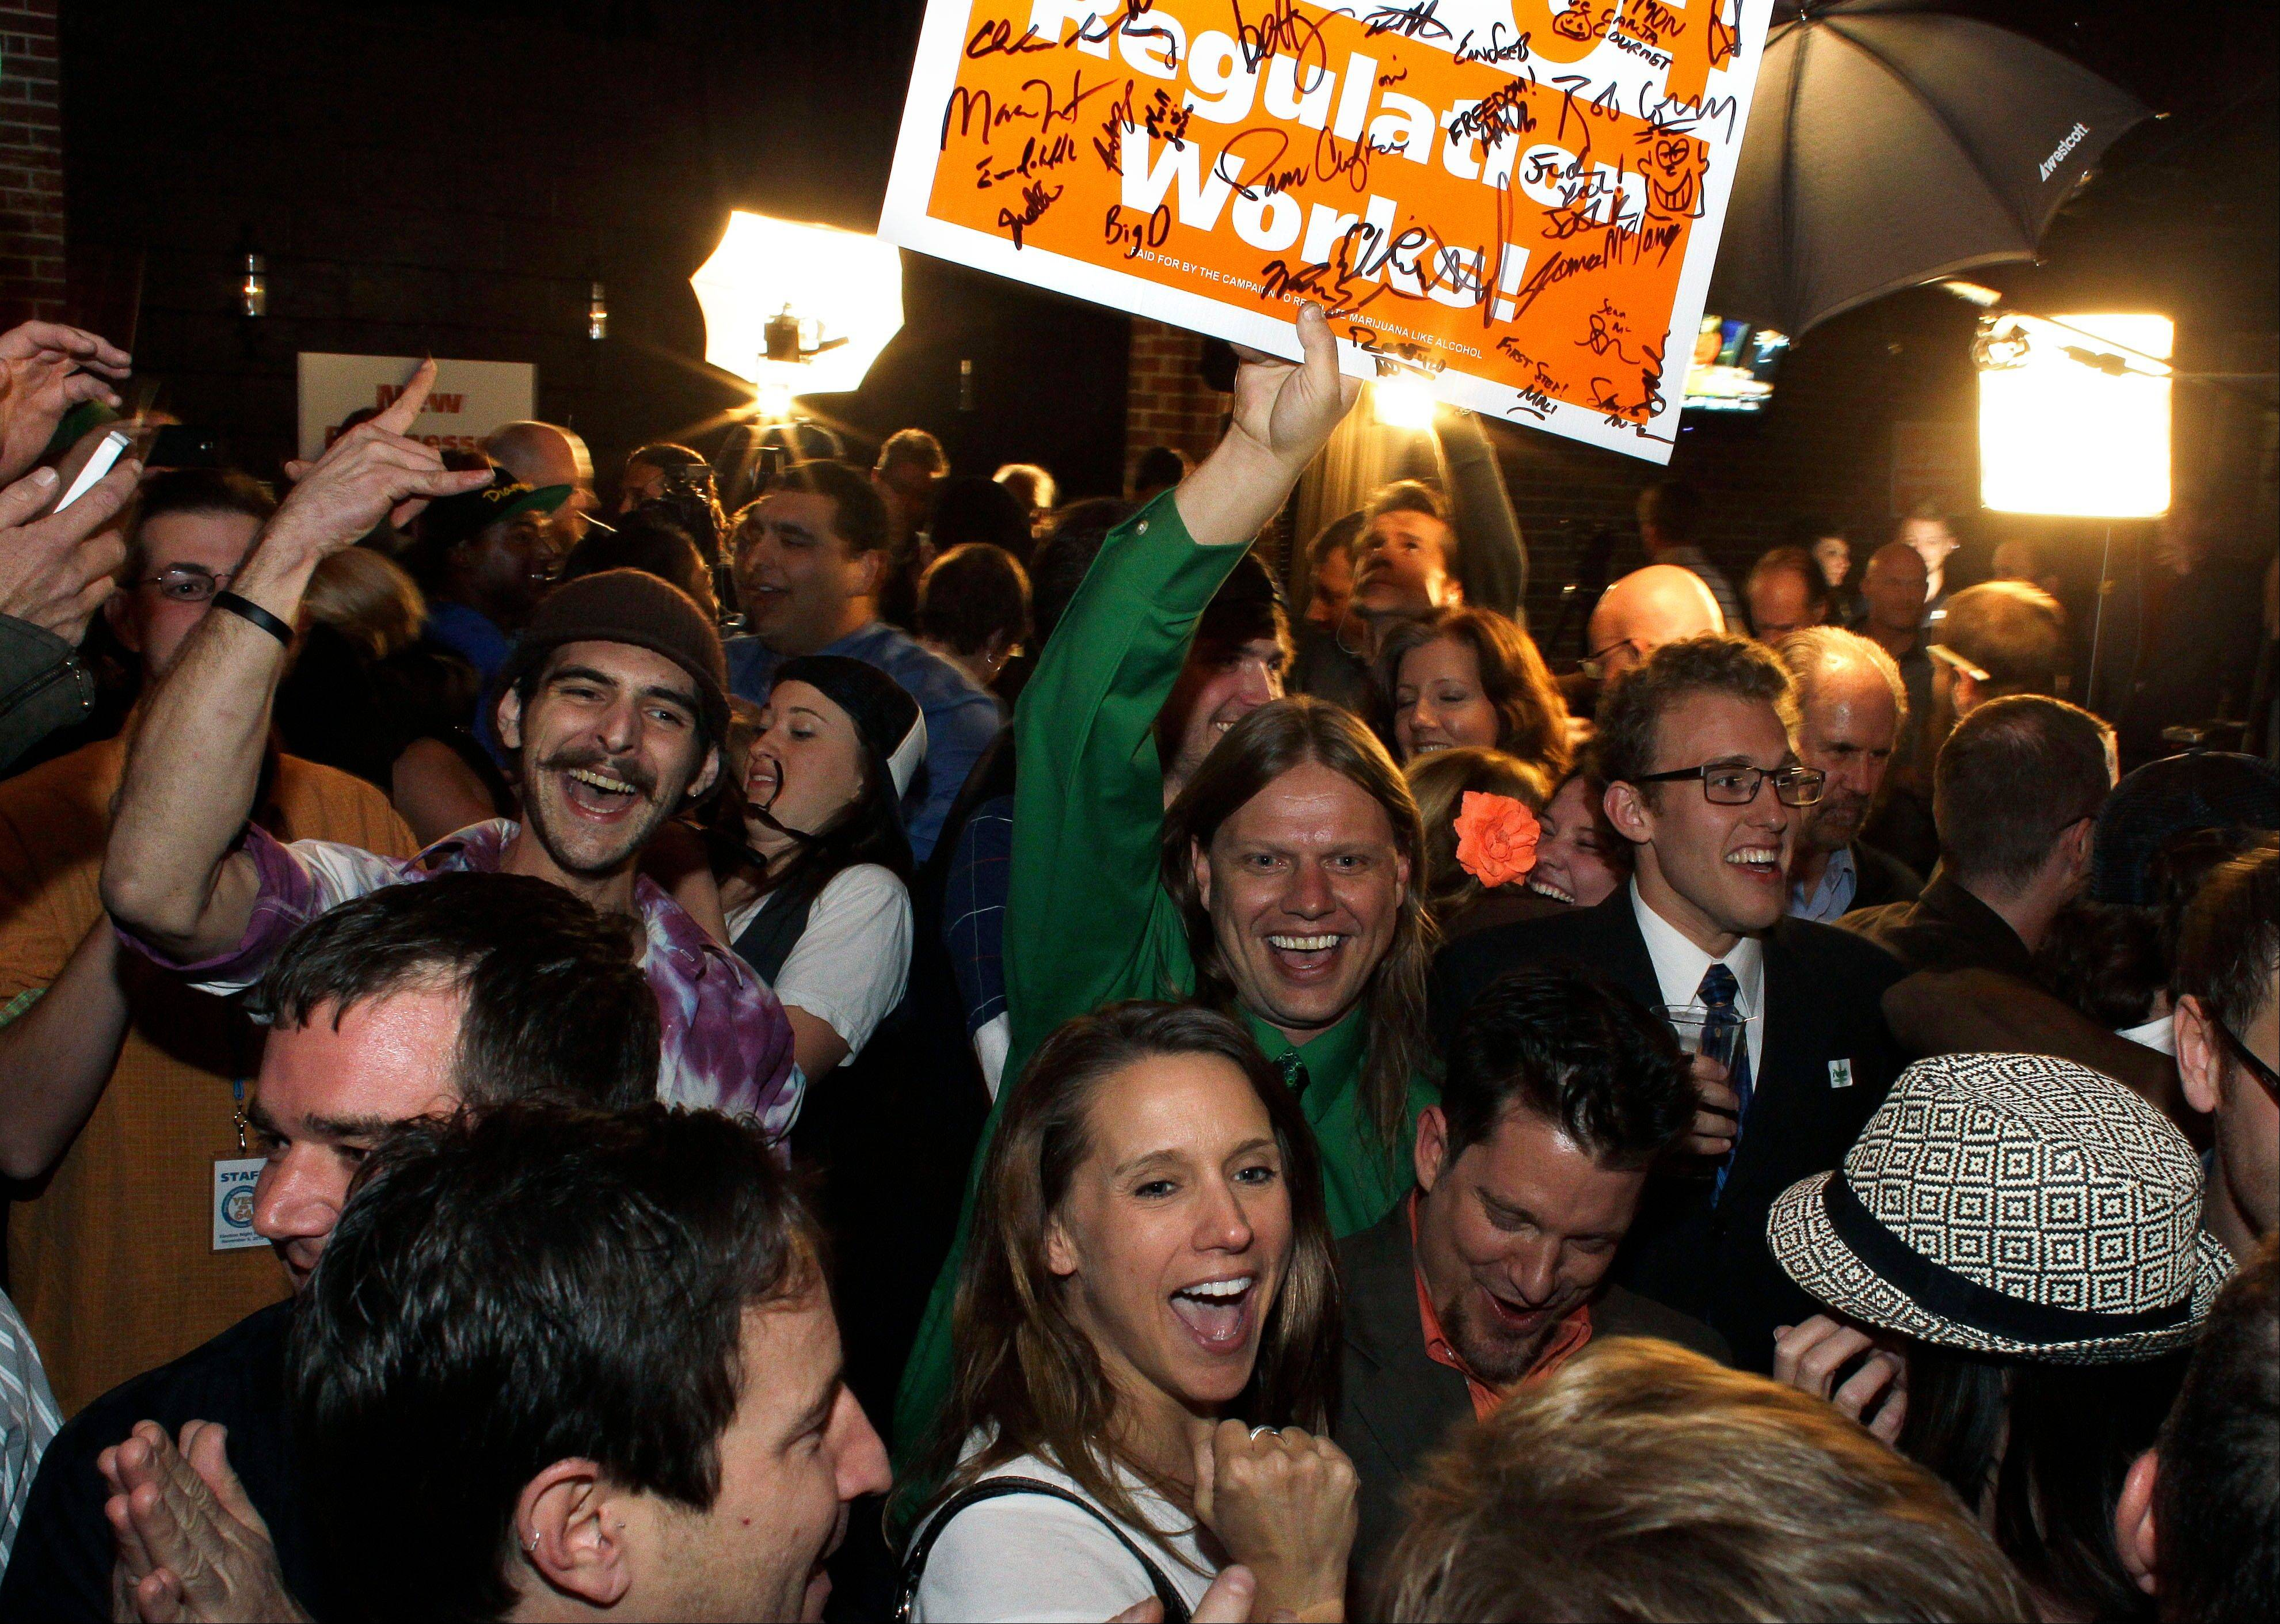 People attending an Amendment 64 watch party celebrate after a local television station announced the marijuana amendment's passage in Denver, Colo.